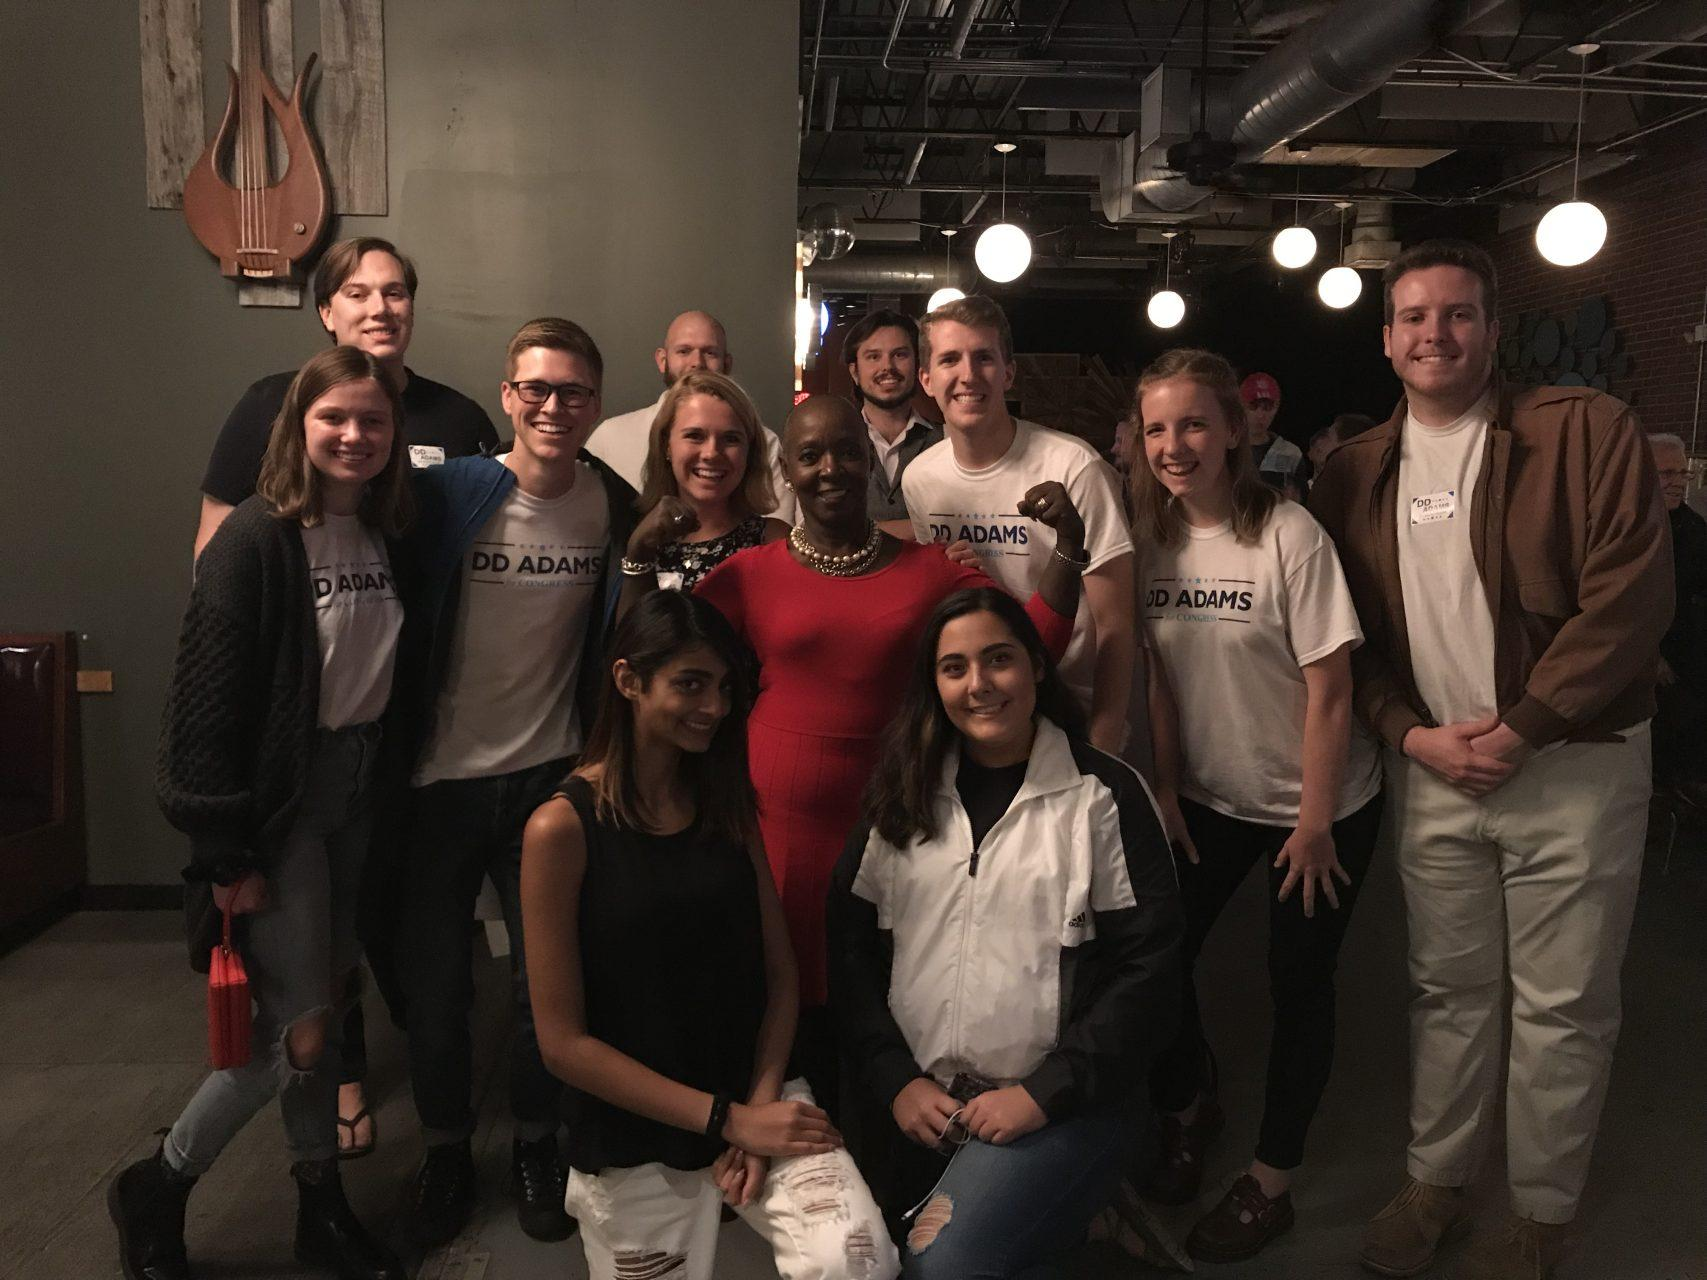 DD Adams poses with students from App State, some serving as interns for her campaign. Adams has been running for congress for 22 months.